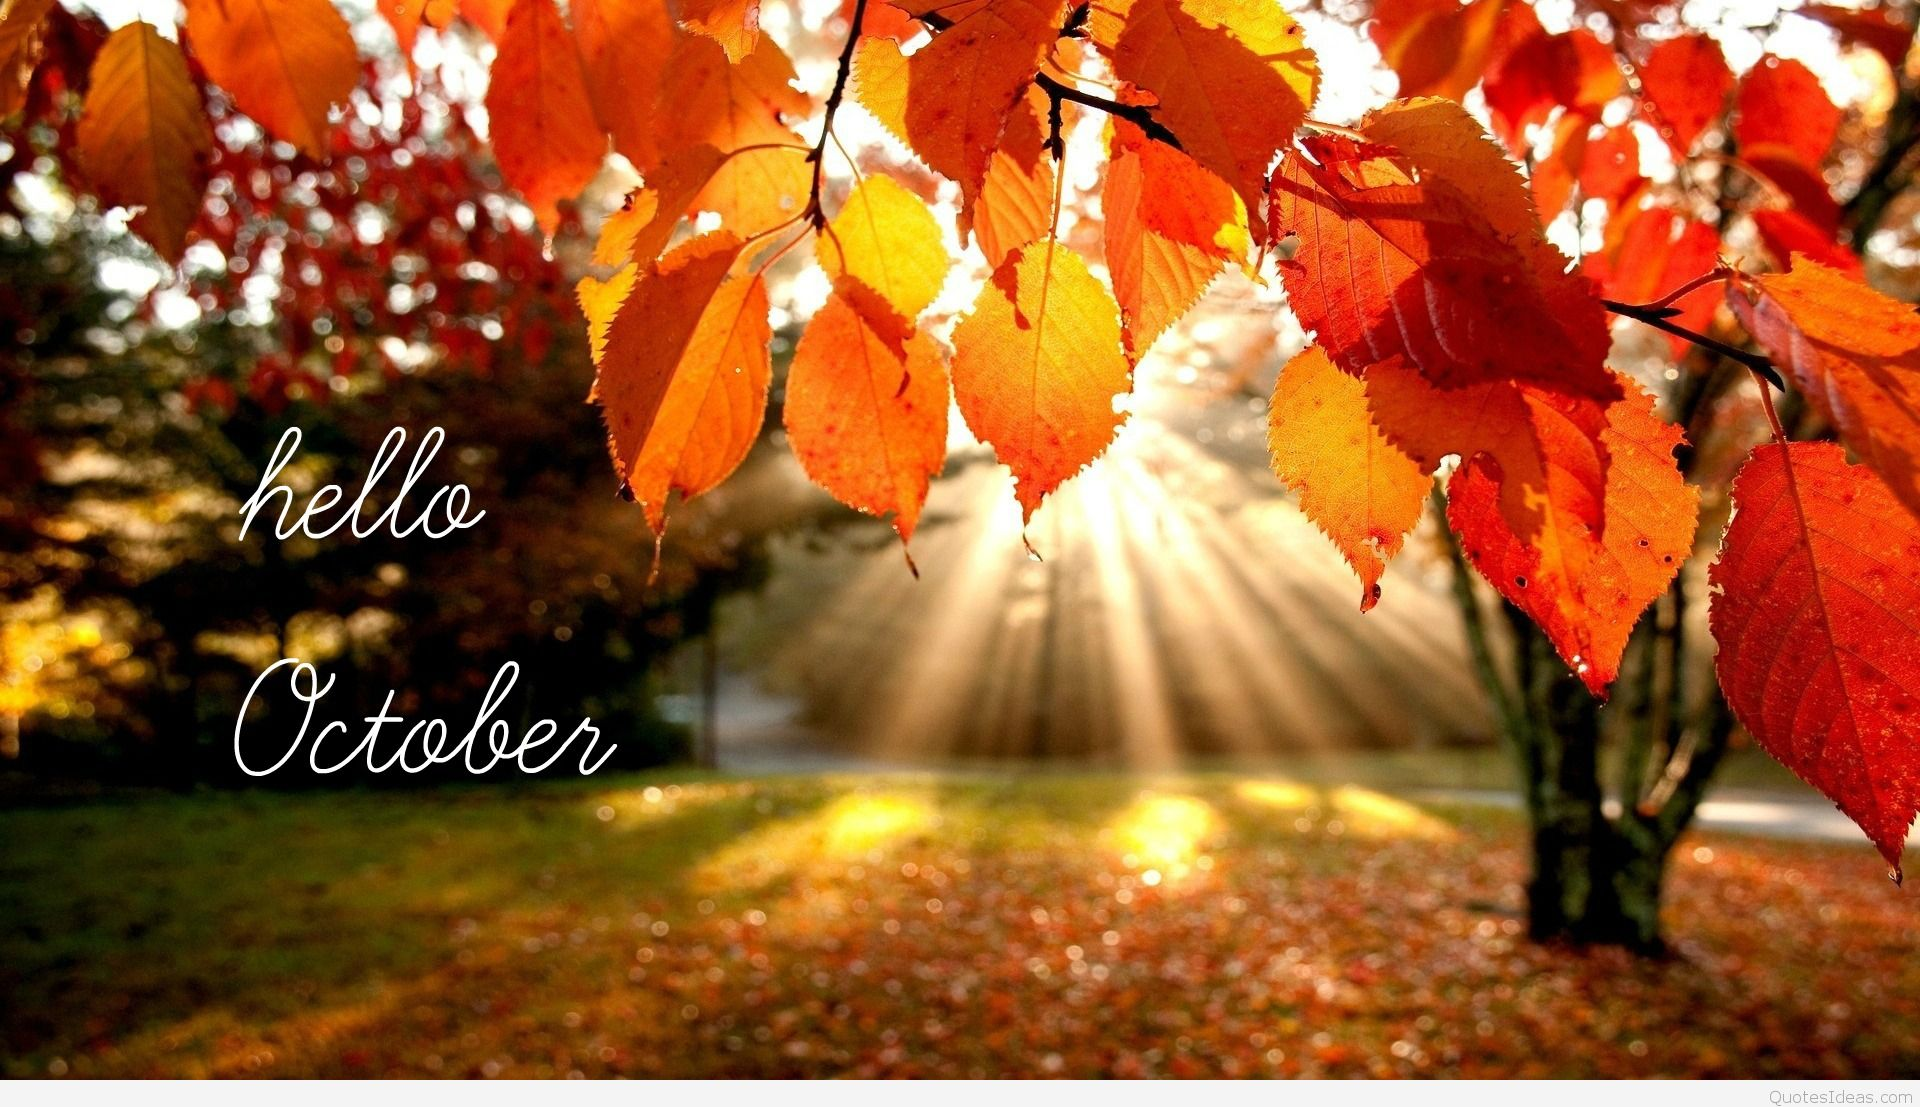 Welcome October HD Wallpaper